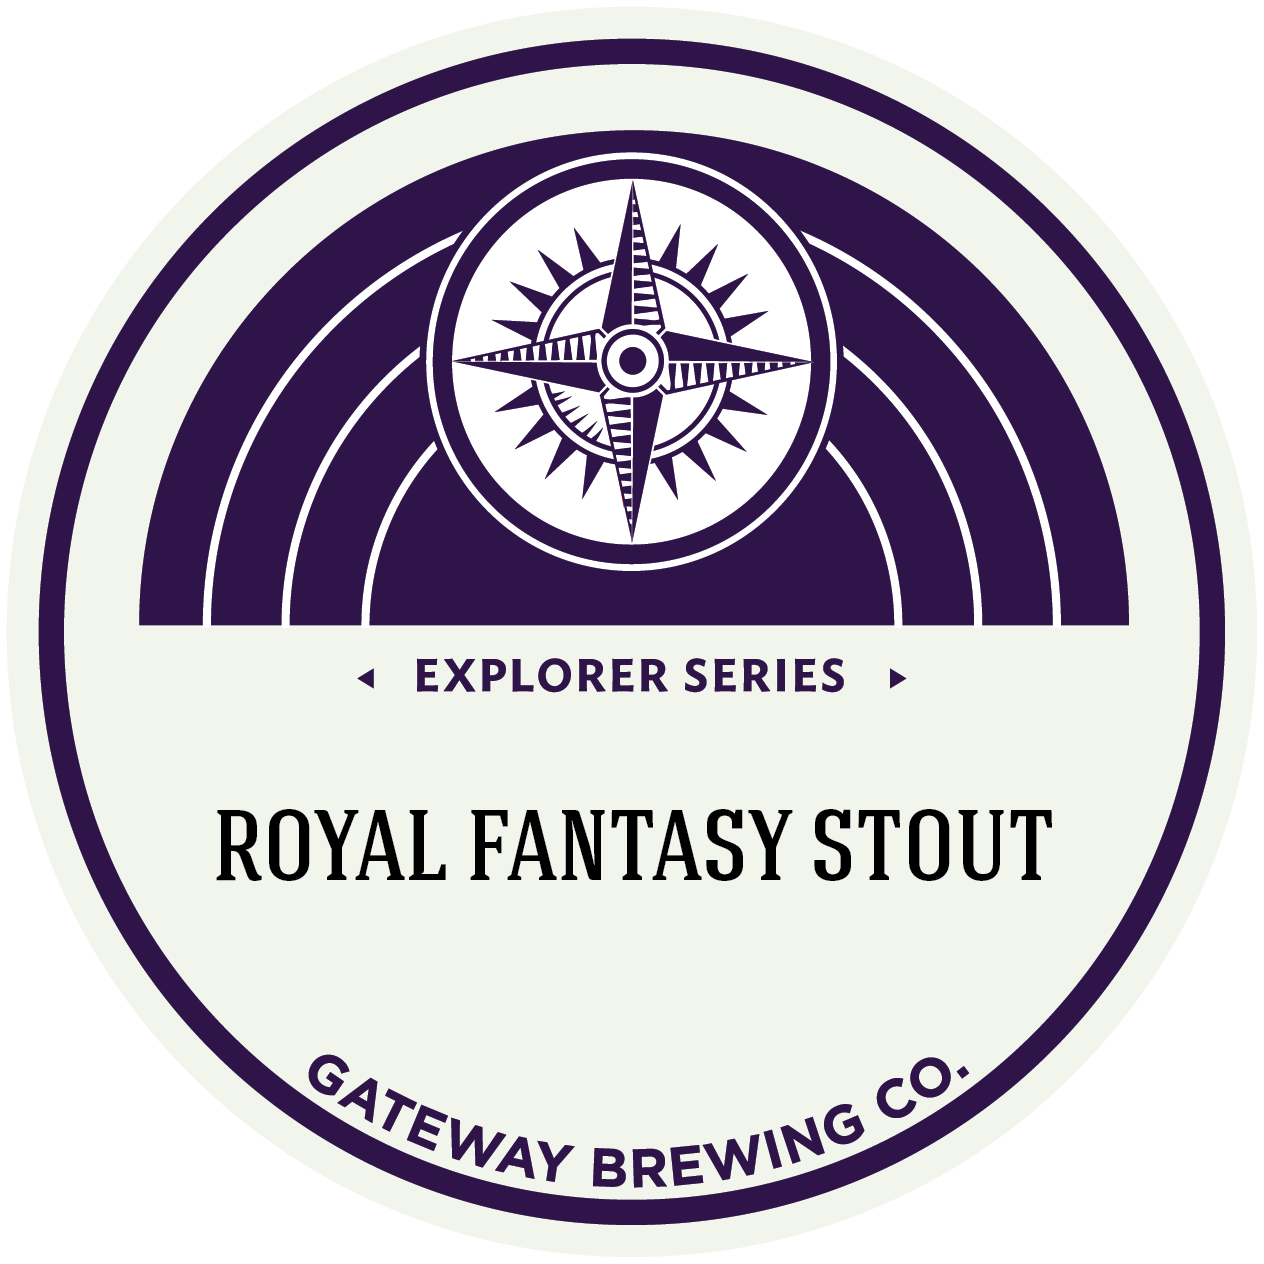 Royal Fantasy Stout